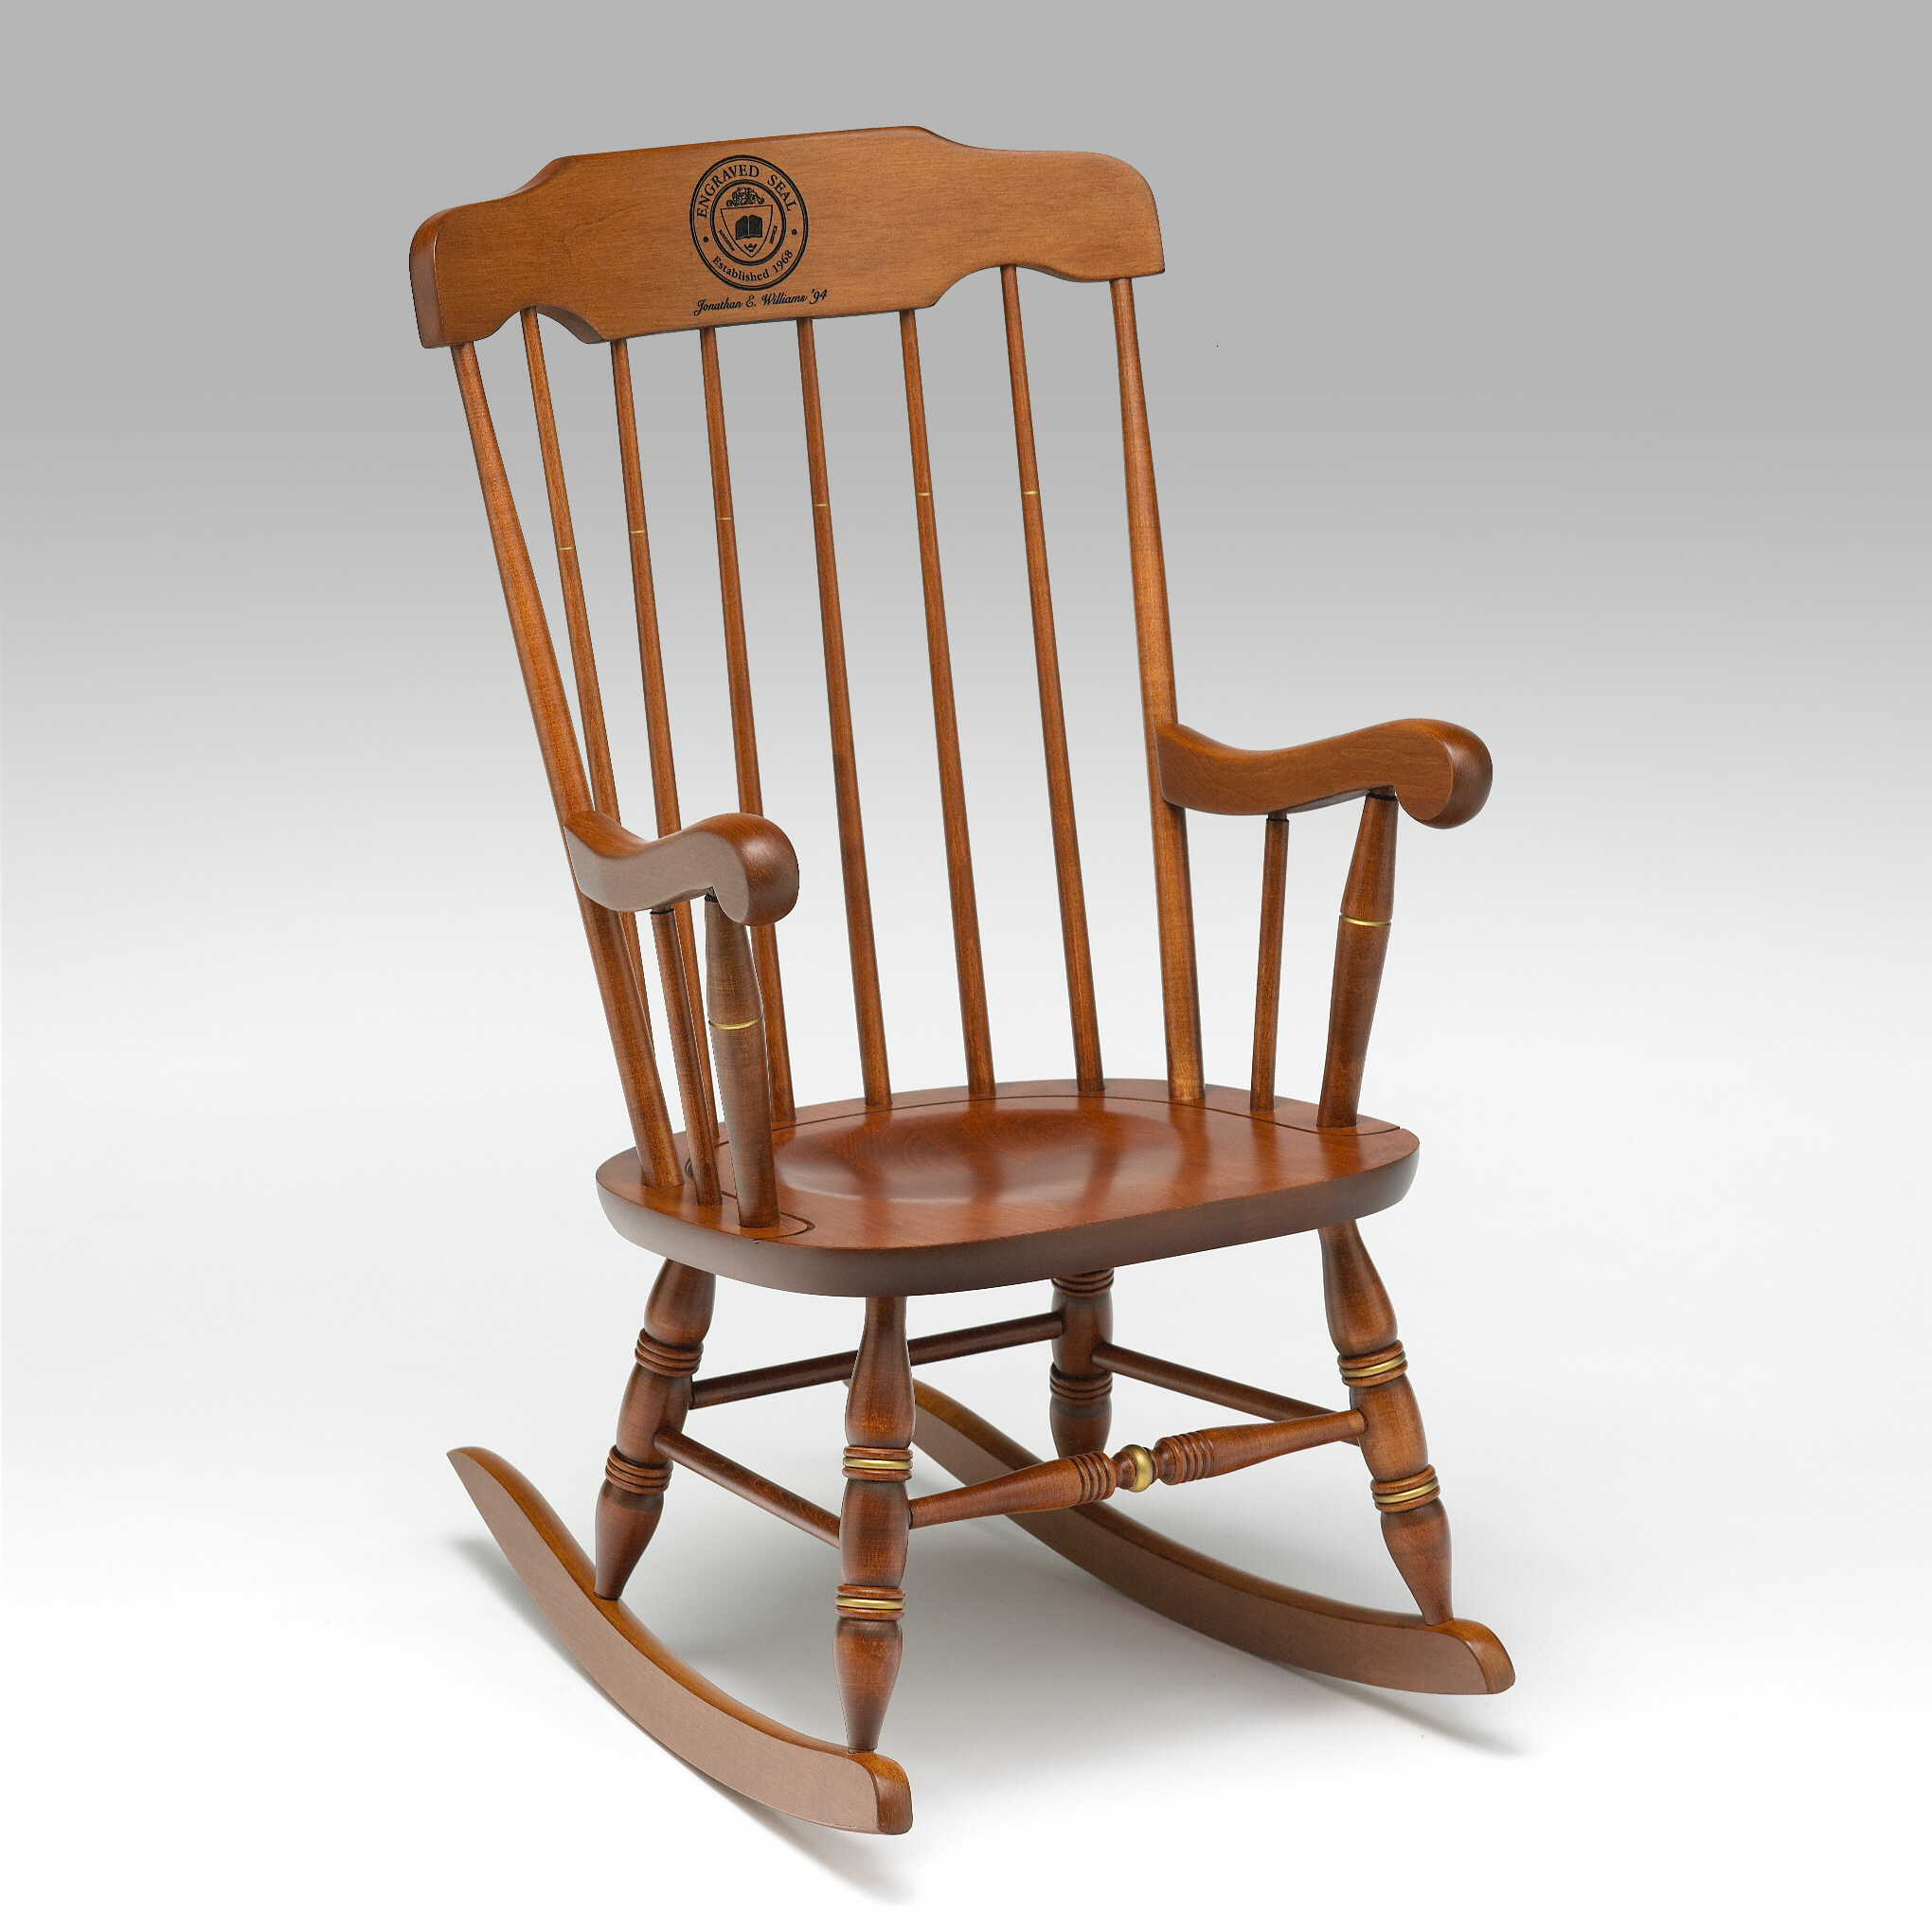 ... rocking chair like this ...  sc 1 st  Ask MetaFilter & Help me safely disassemble a rocking chair - furniture DIT ...